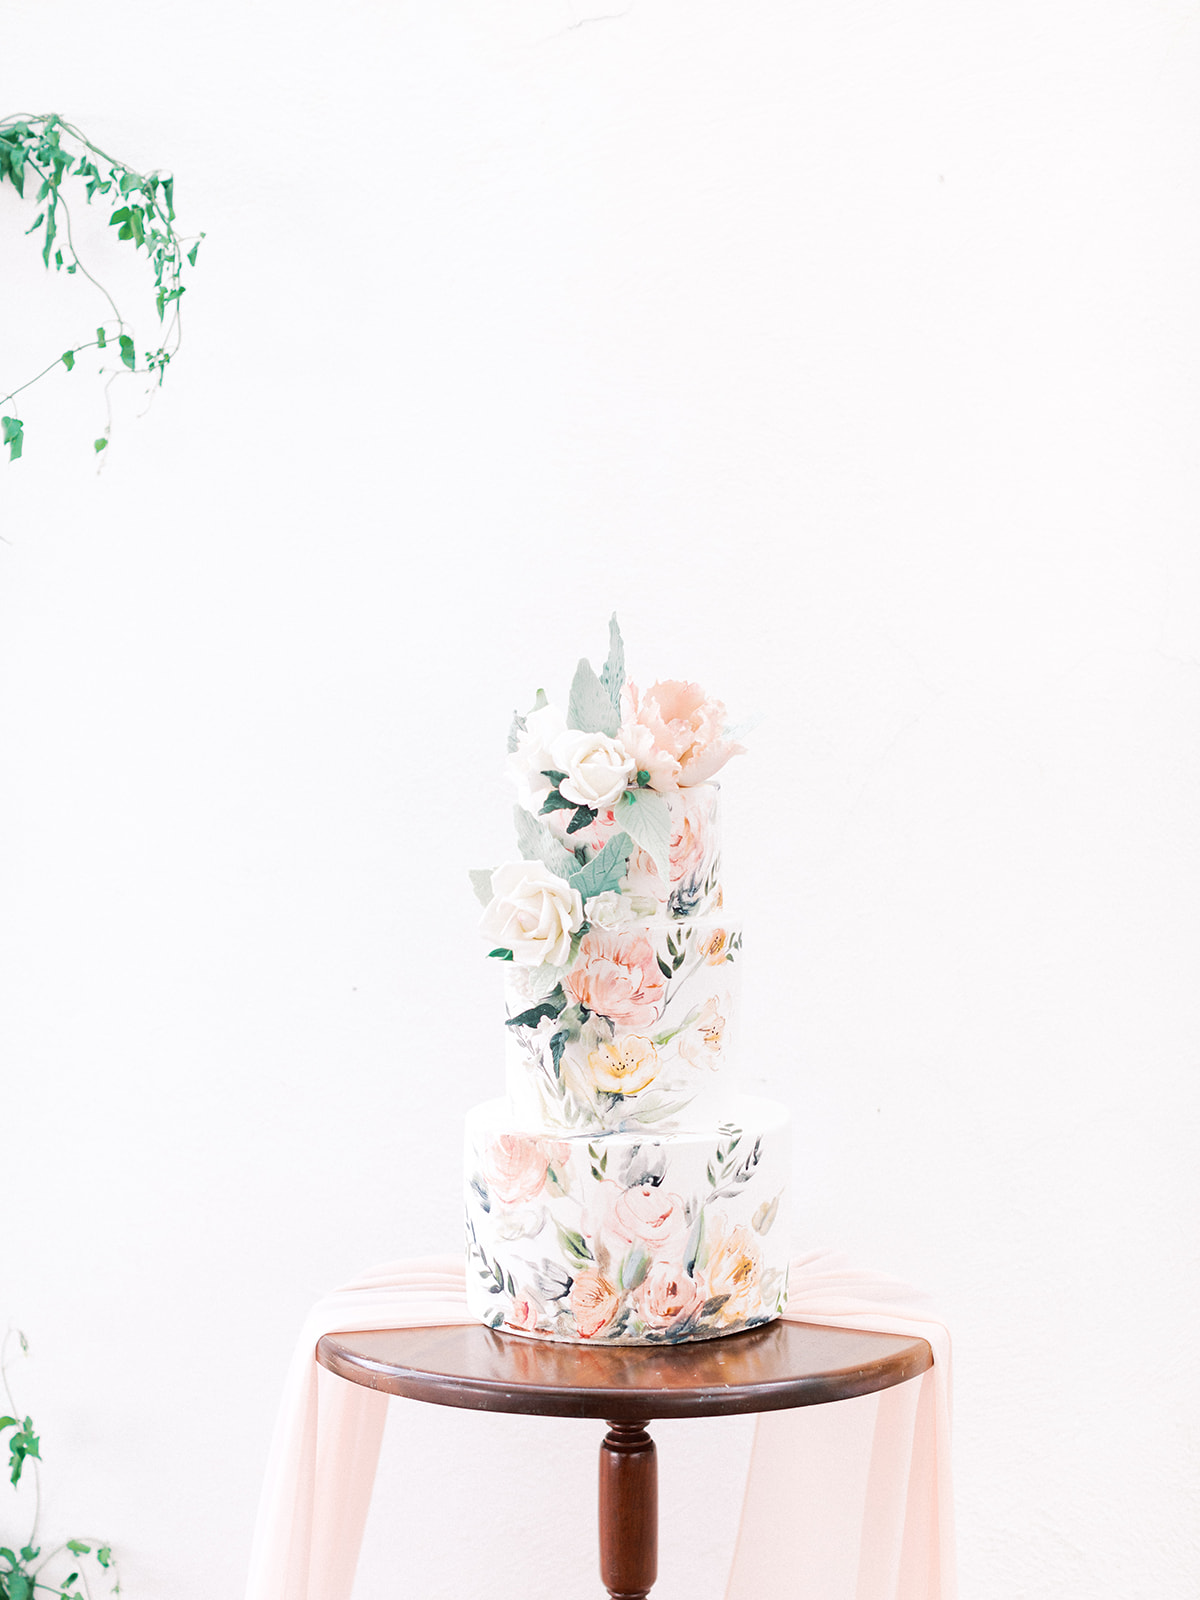 Hand painted wedding flowers: Beach Wedding Inspiration | Dominican Republic